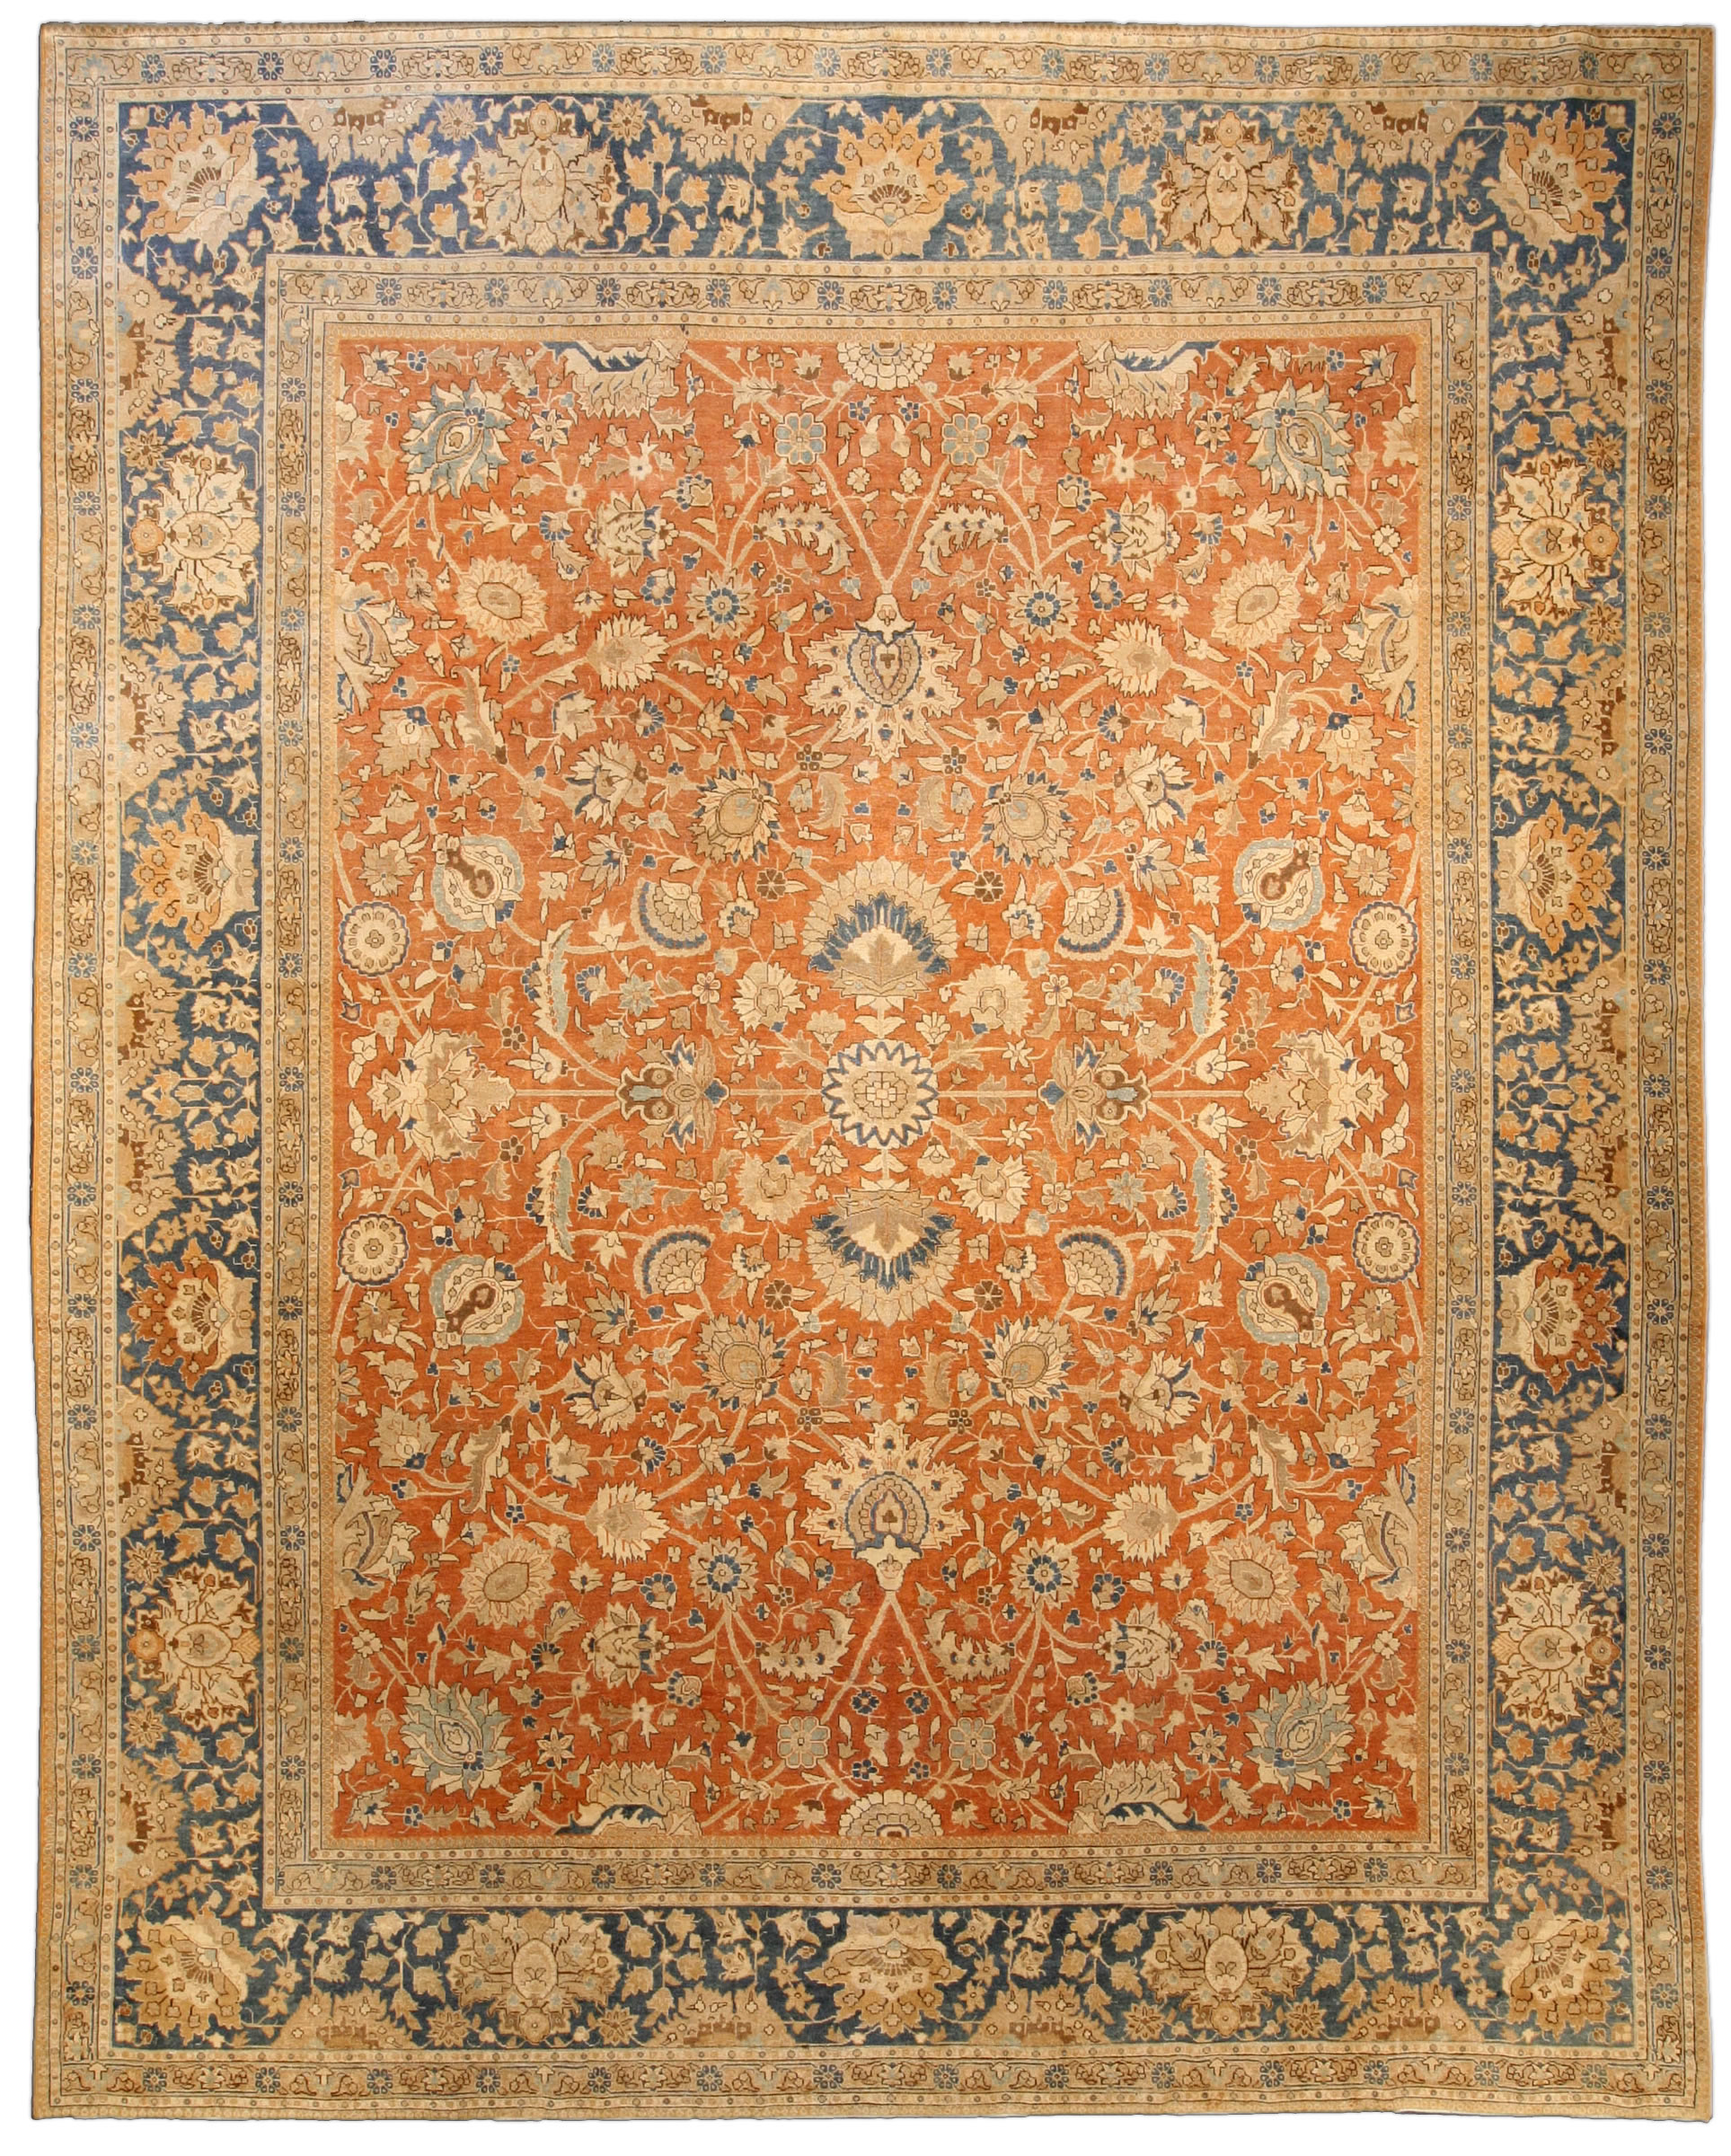 Antique Persian Tabriz Carpet BB4037 By Doris Leslie Blau